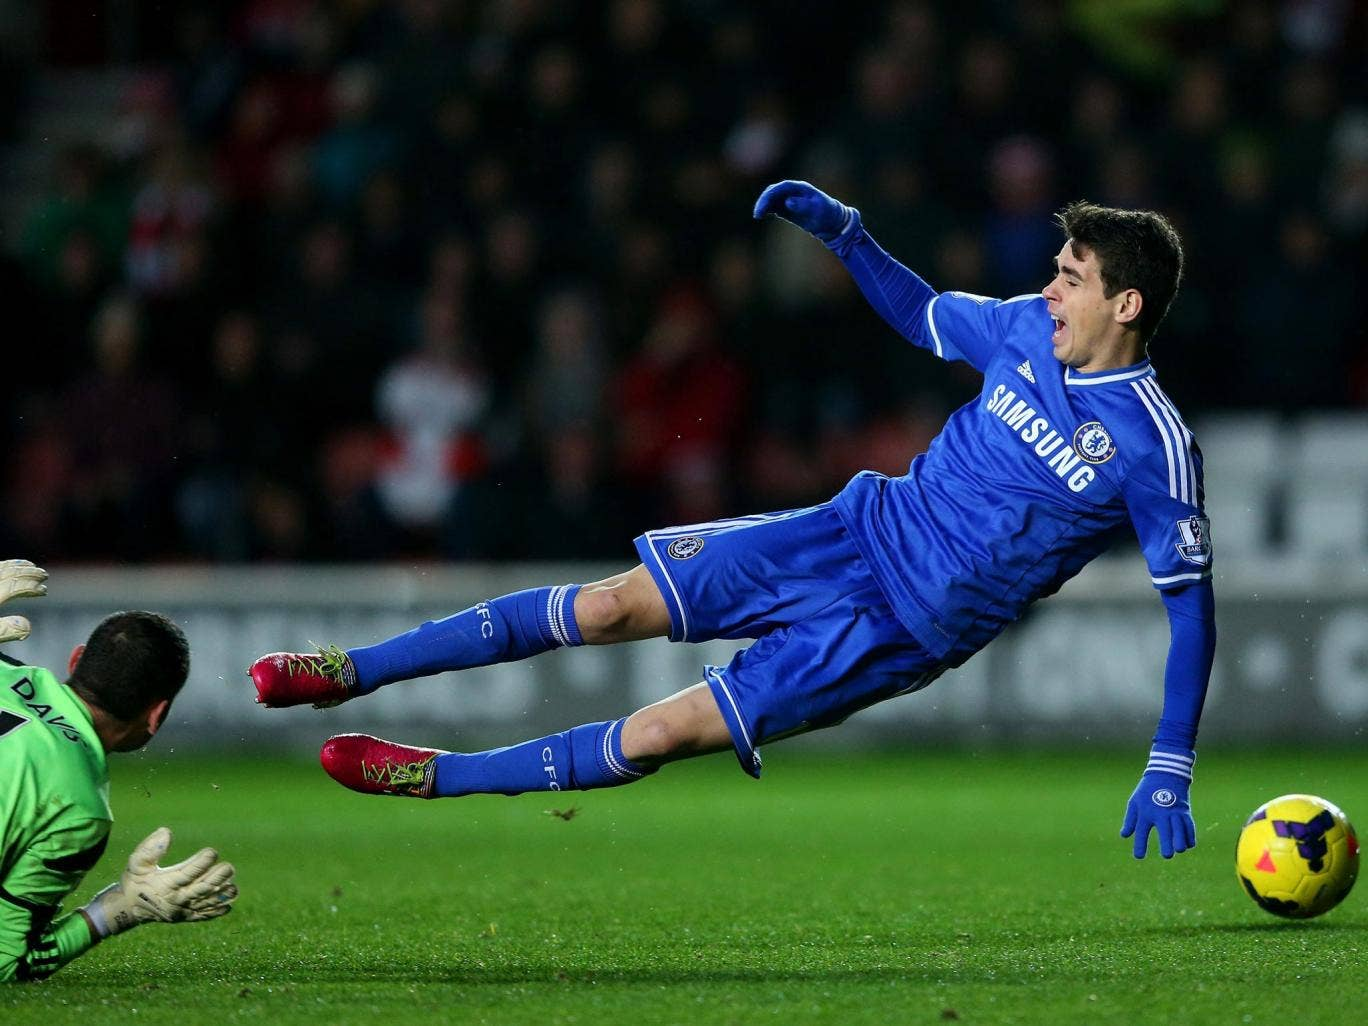 Jose Mourinho has admitted Chelsea's Oscar deserved a yellow card for this theatrical fall against Southampton on New Year's Day